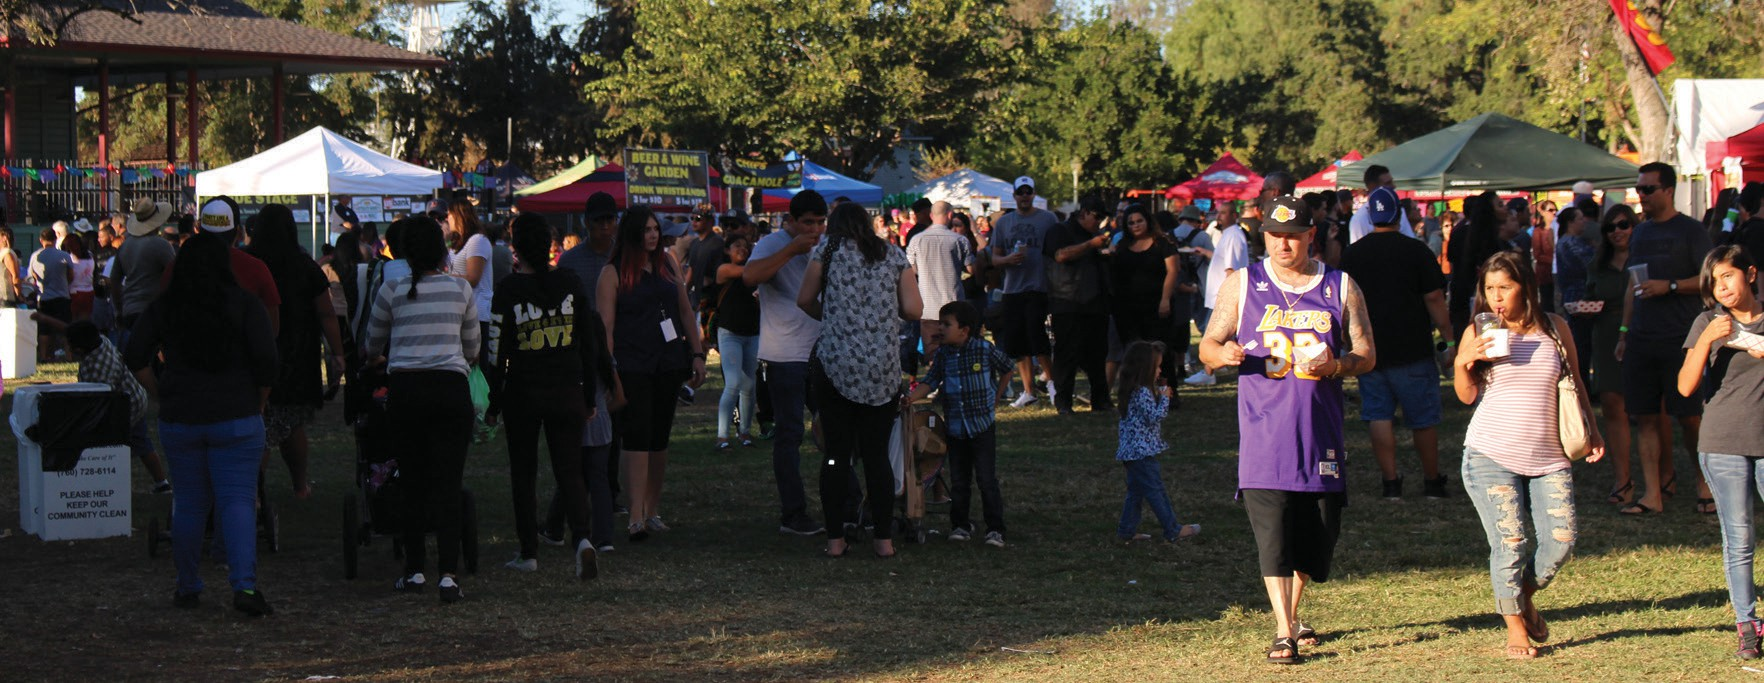 Festival goers stroll through the grounds as the afternoon sun casts shadows.